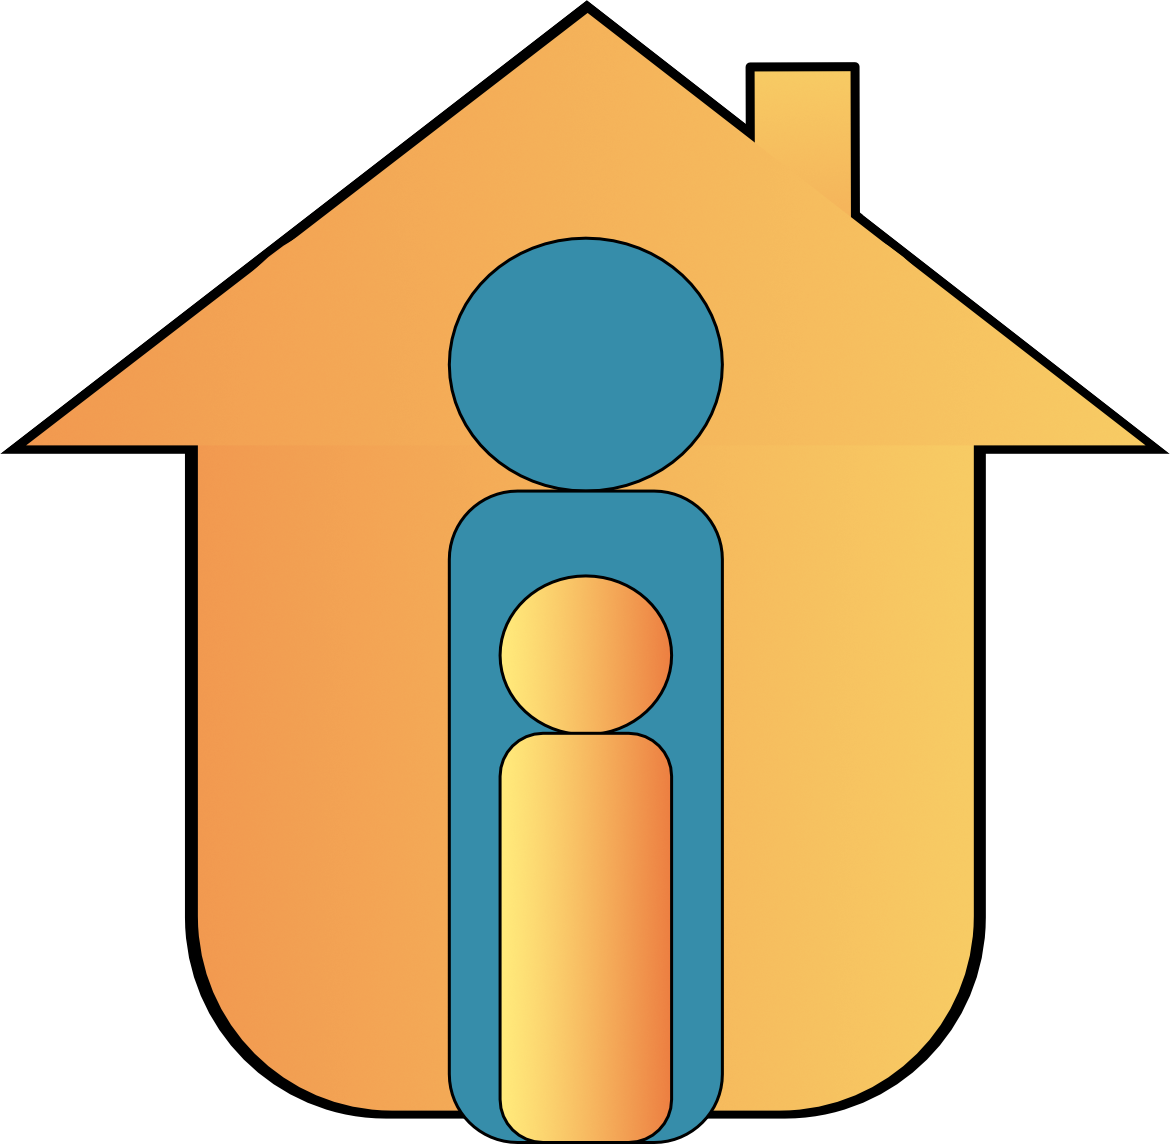 Web icon graphic as the outline of 1 adult and a child in front of a house yellow and steel blue